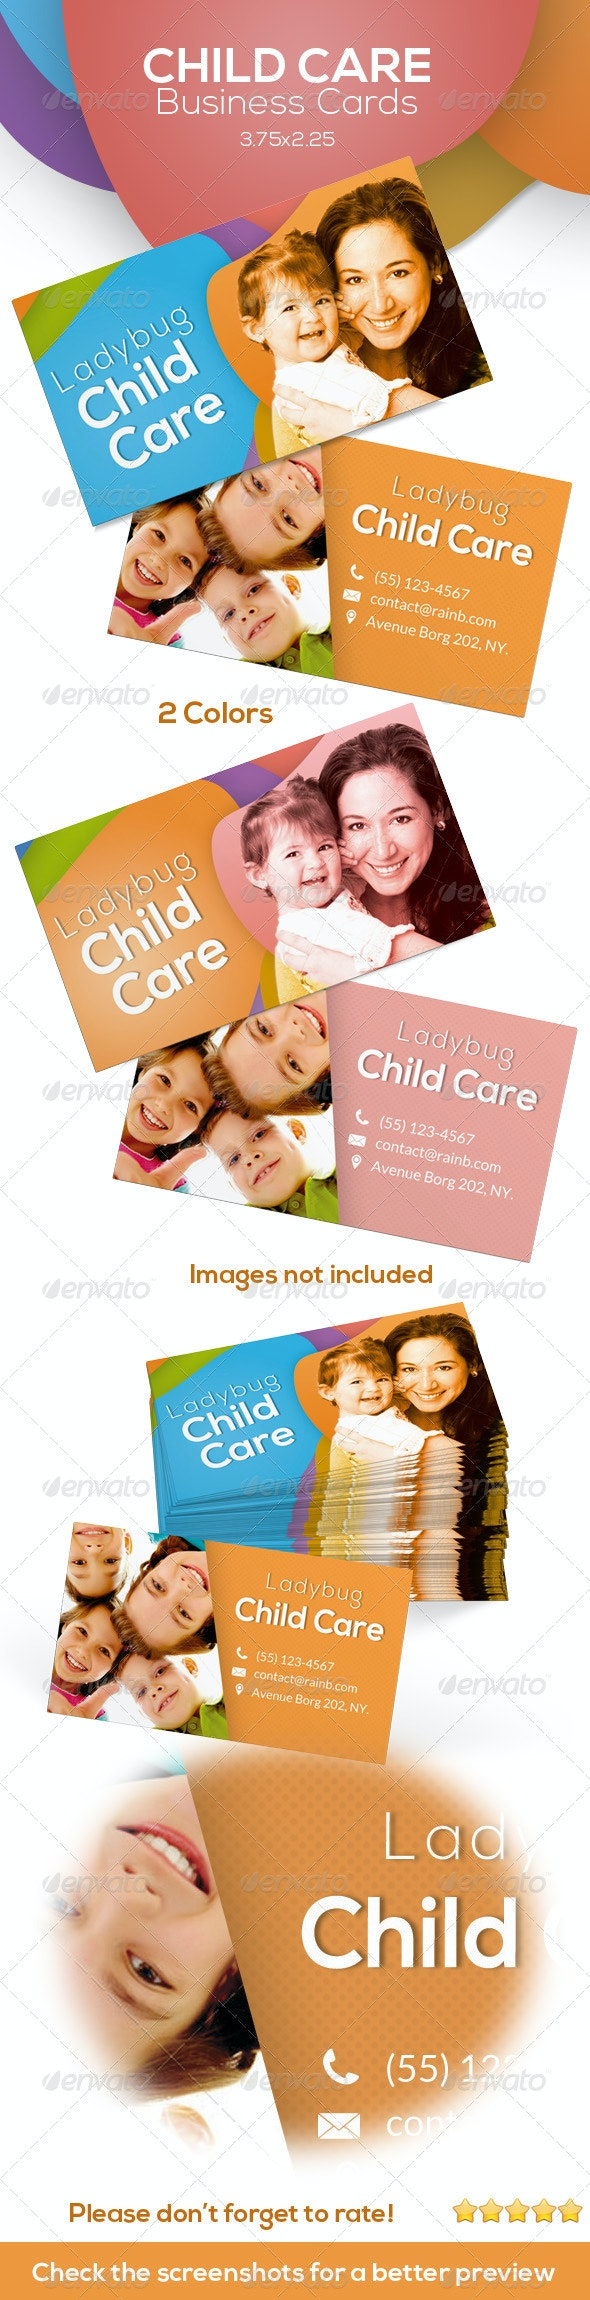 Child Care Business Cards - Industry Specific Business Cards